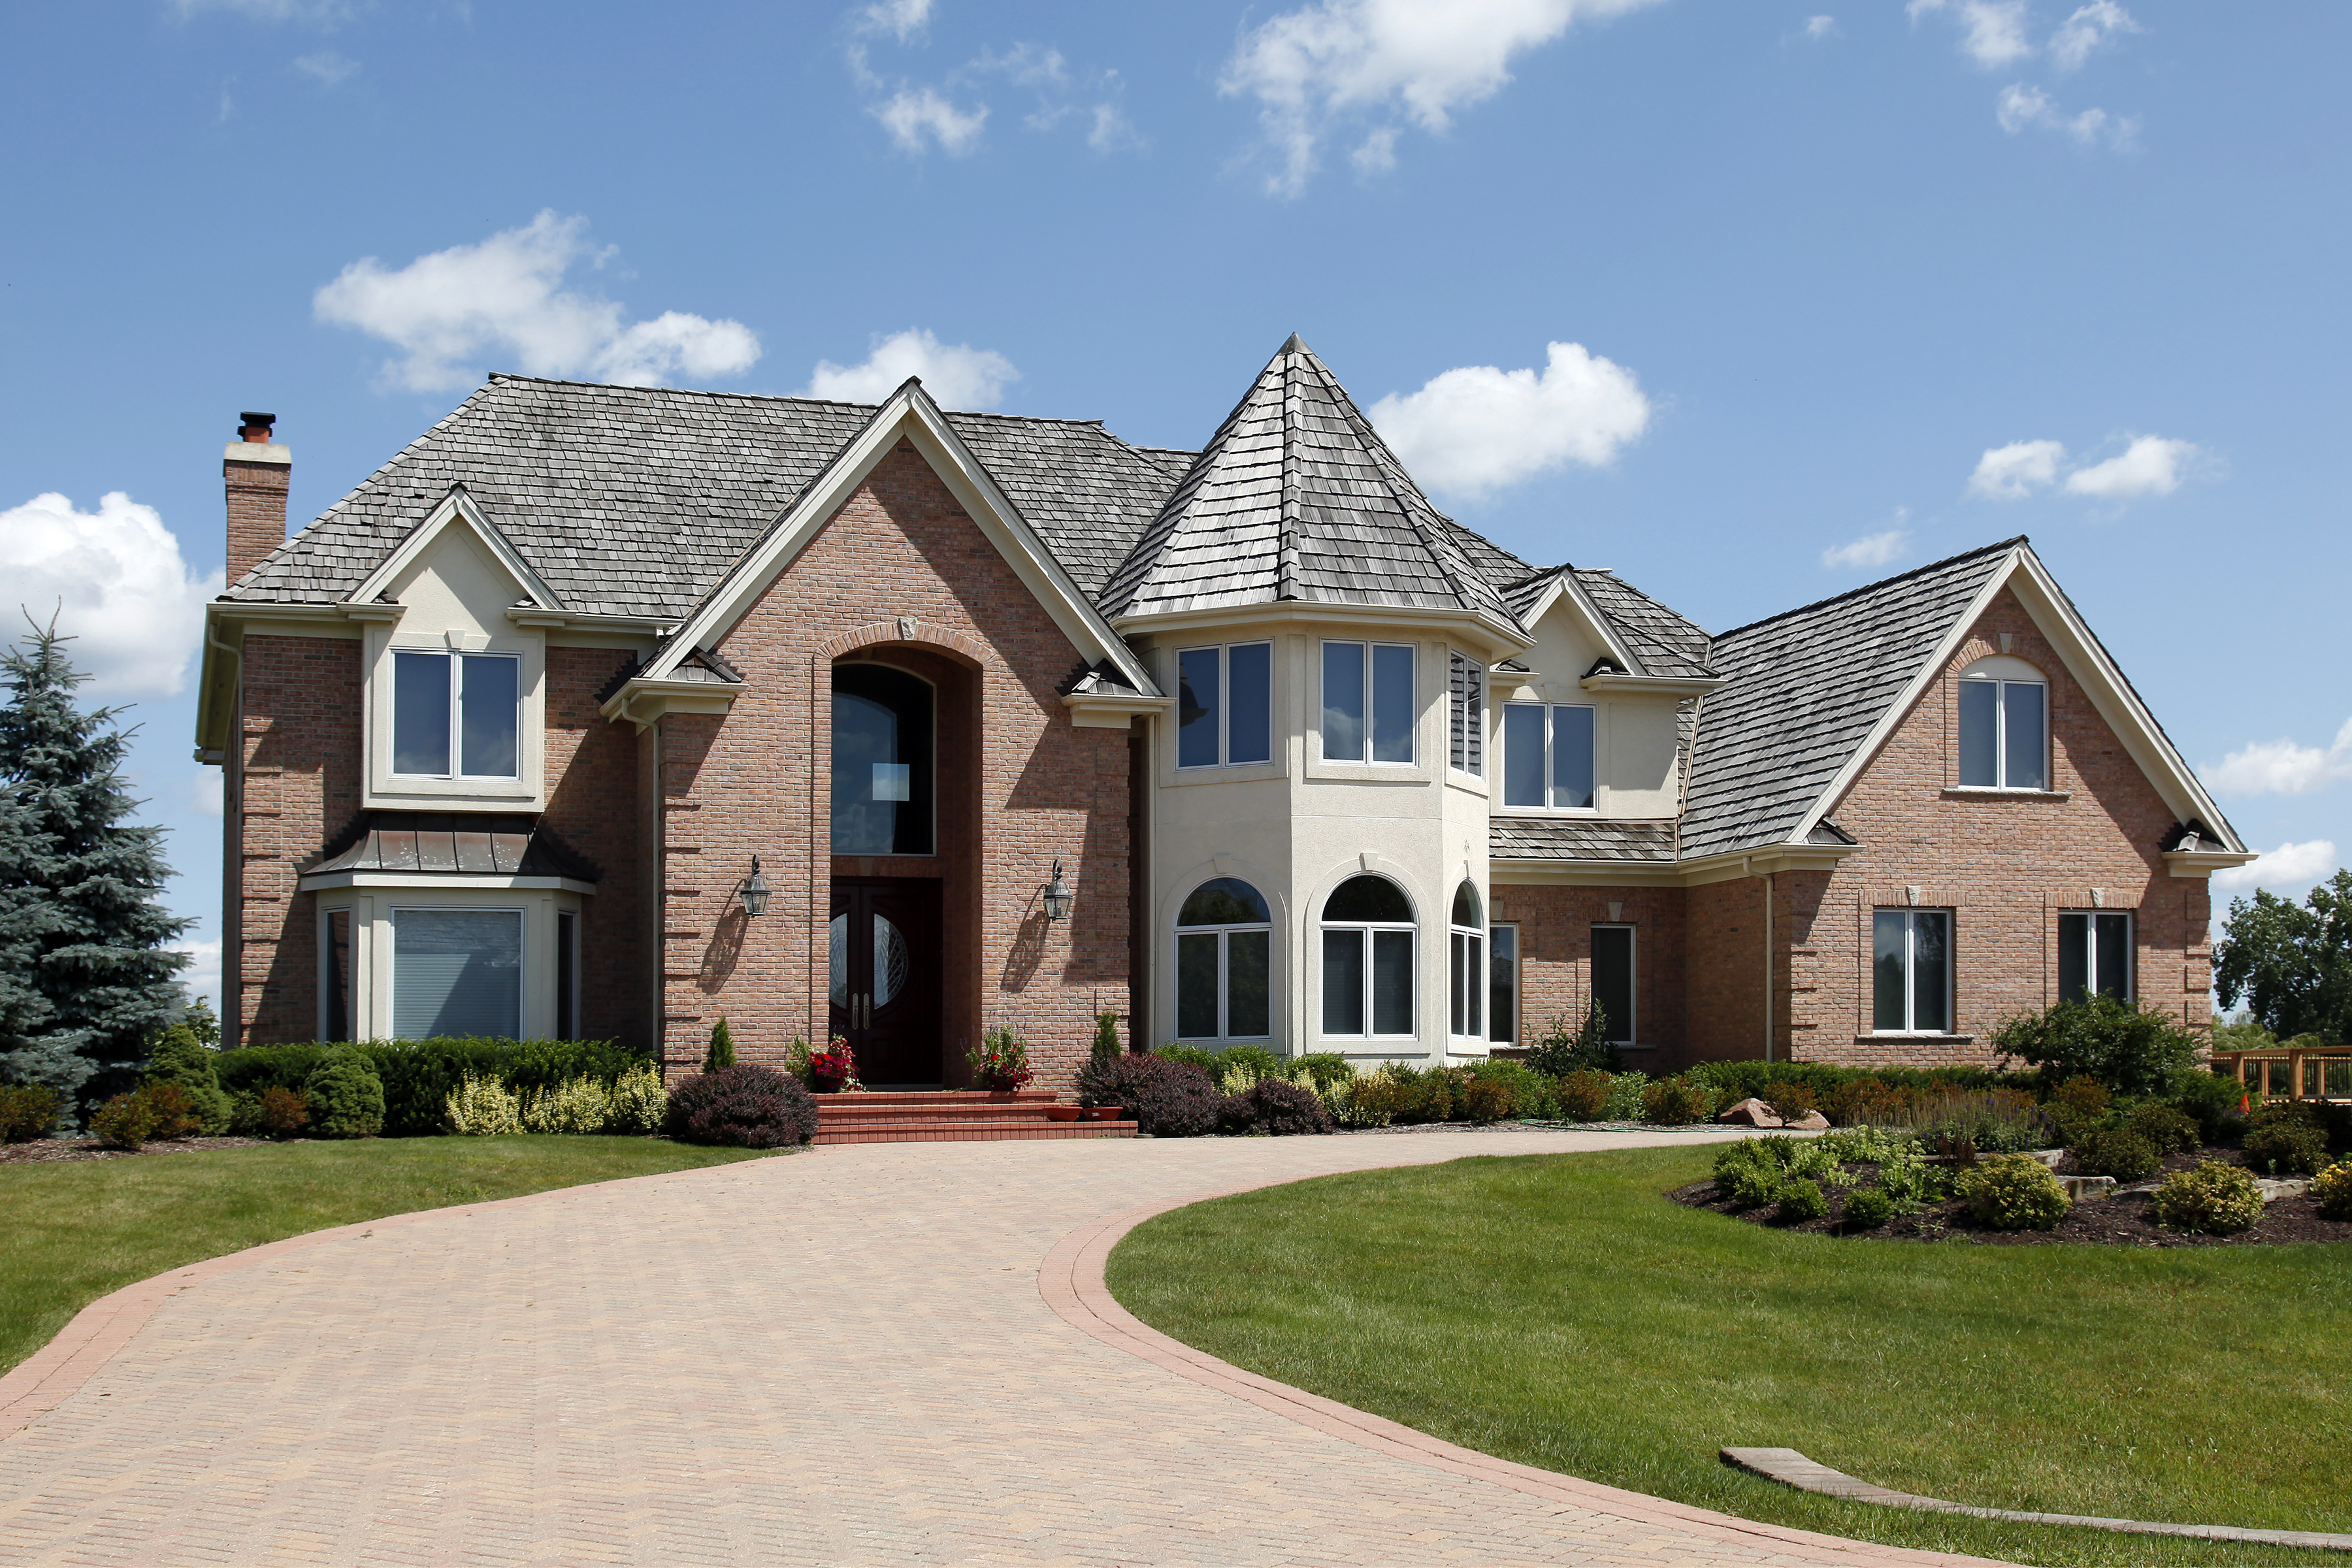 bigstock-Large-home-in-suburbs-with-tur-18131399